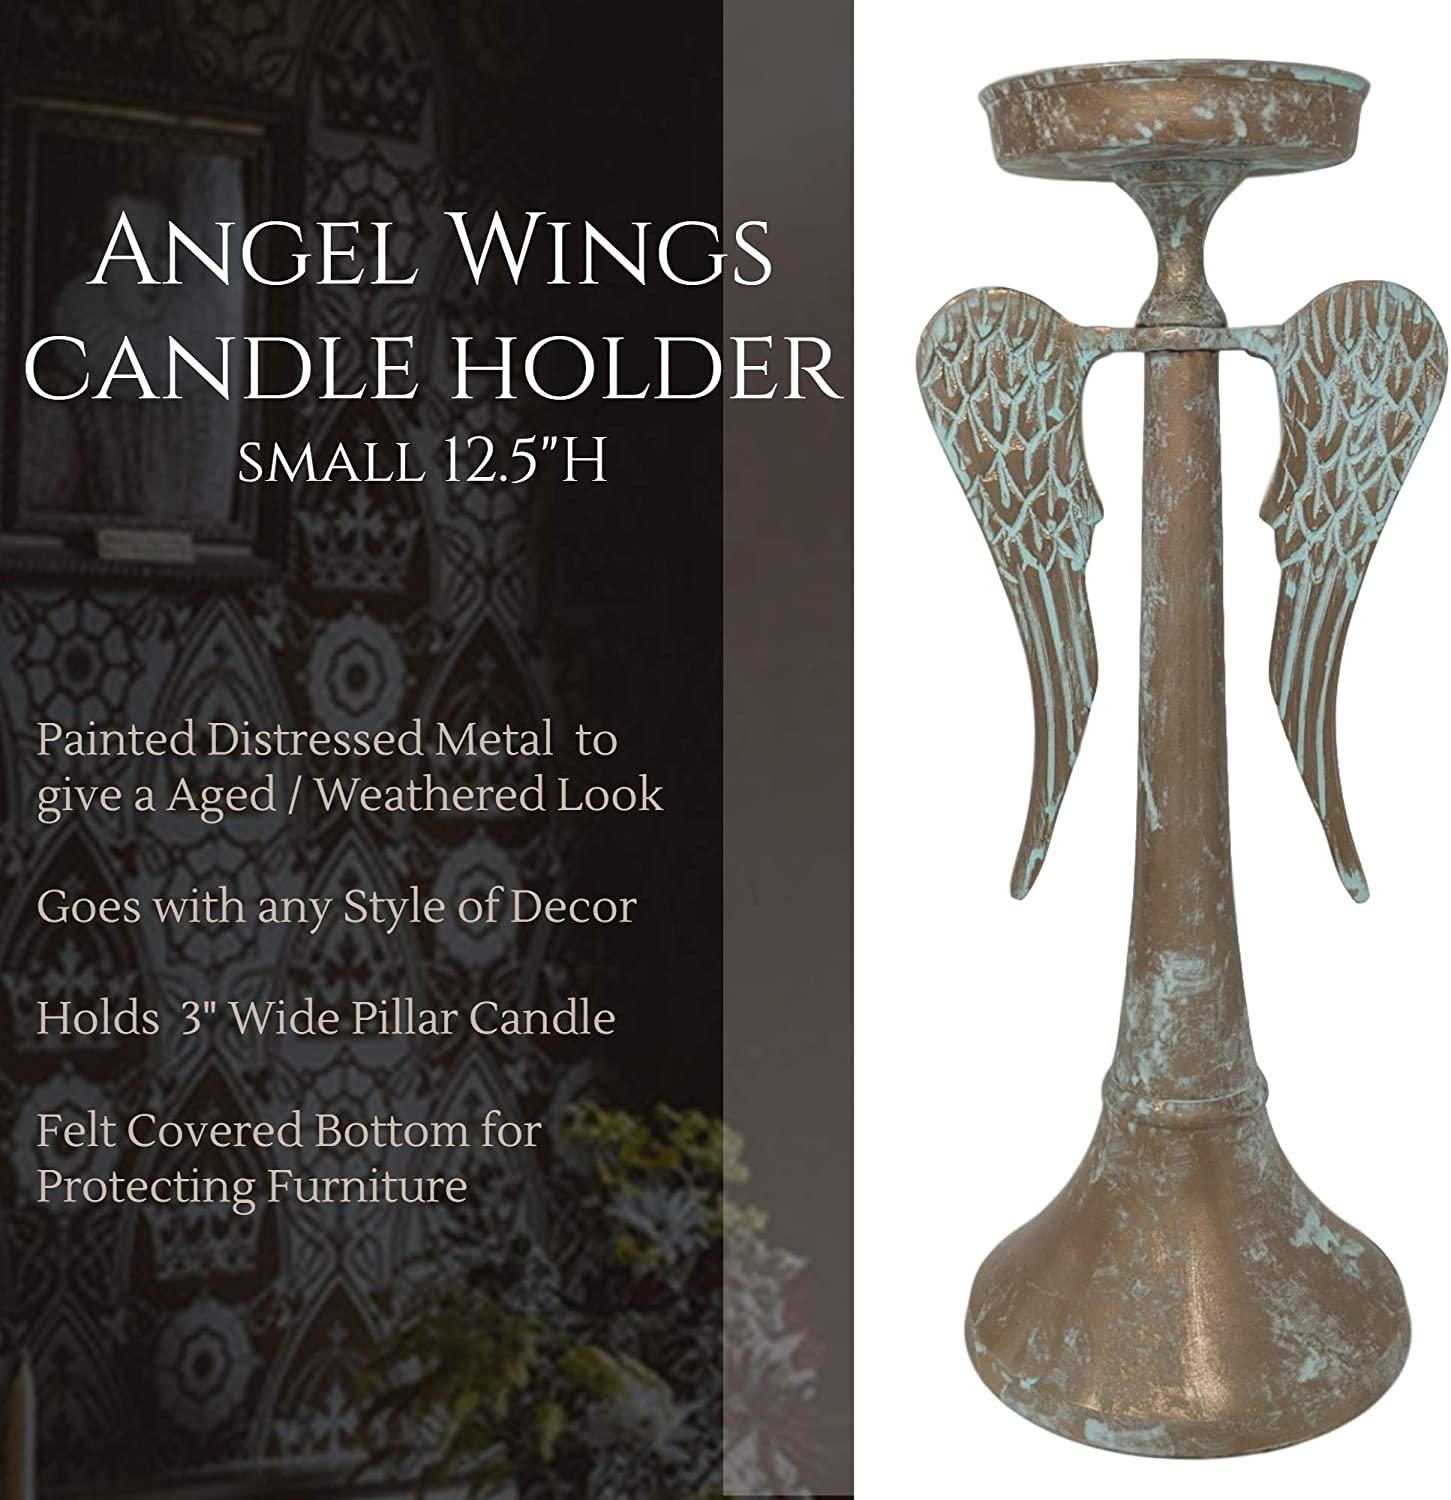 Painted Metal to Give Distressed Rustic Decorative Look and Perfect Pillar Candle Holder Centerpiece for Angel Decor Farmhouse World Angel Wings Candle Holders for Table 12.5 Small Candle Holder